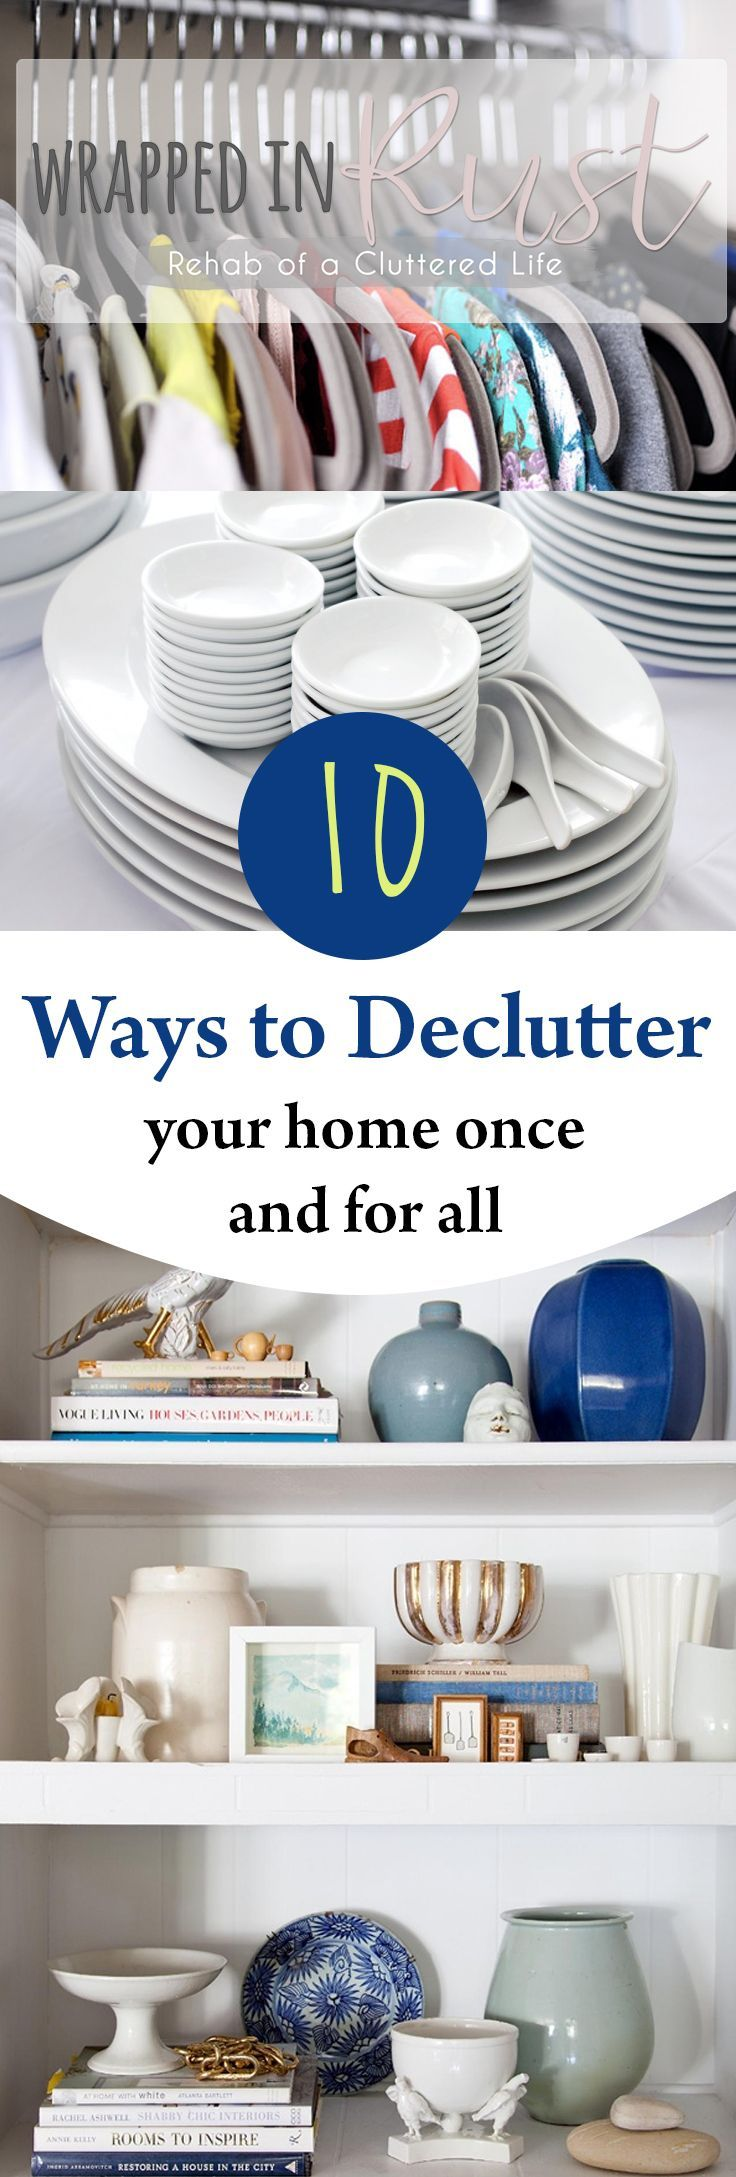 10 Ways to Declutter Your Home Once and For All